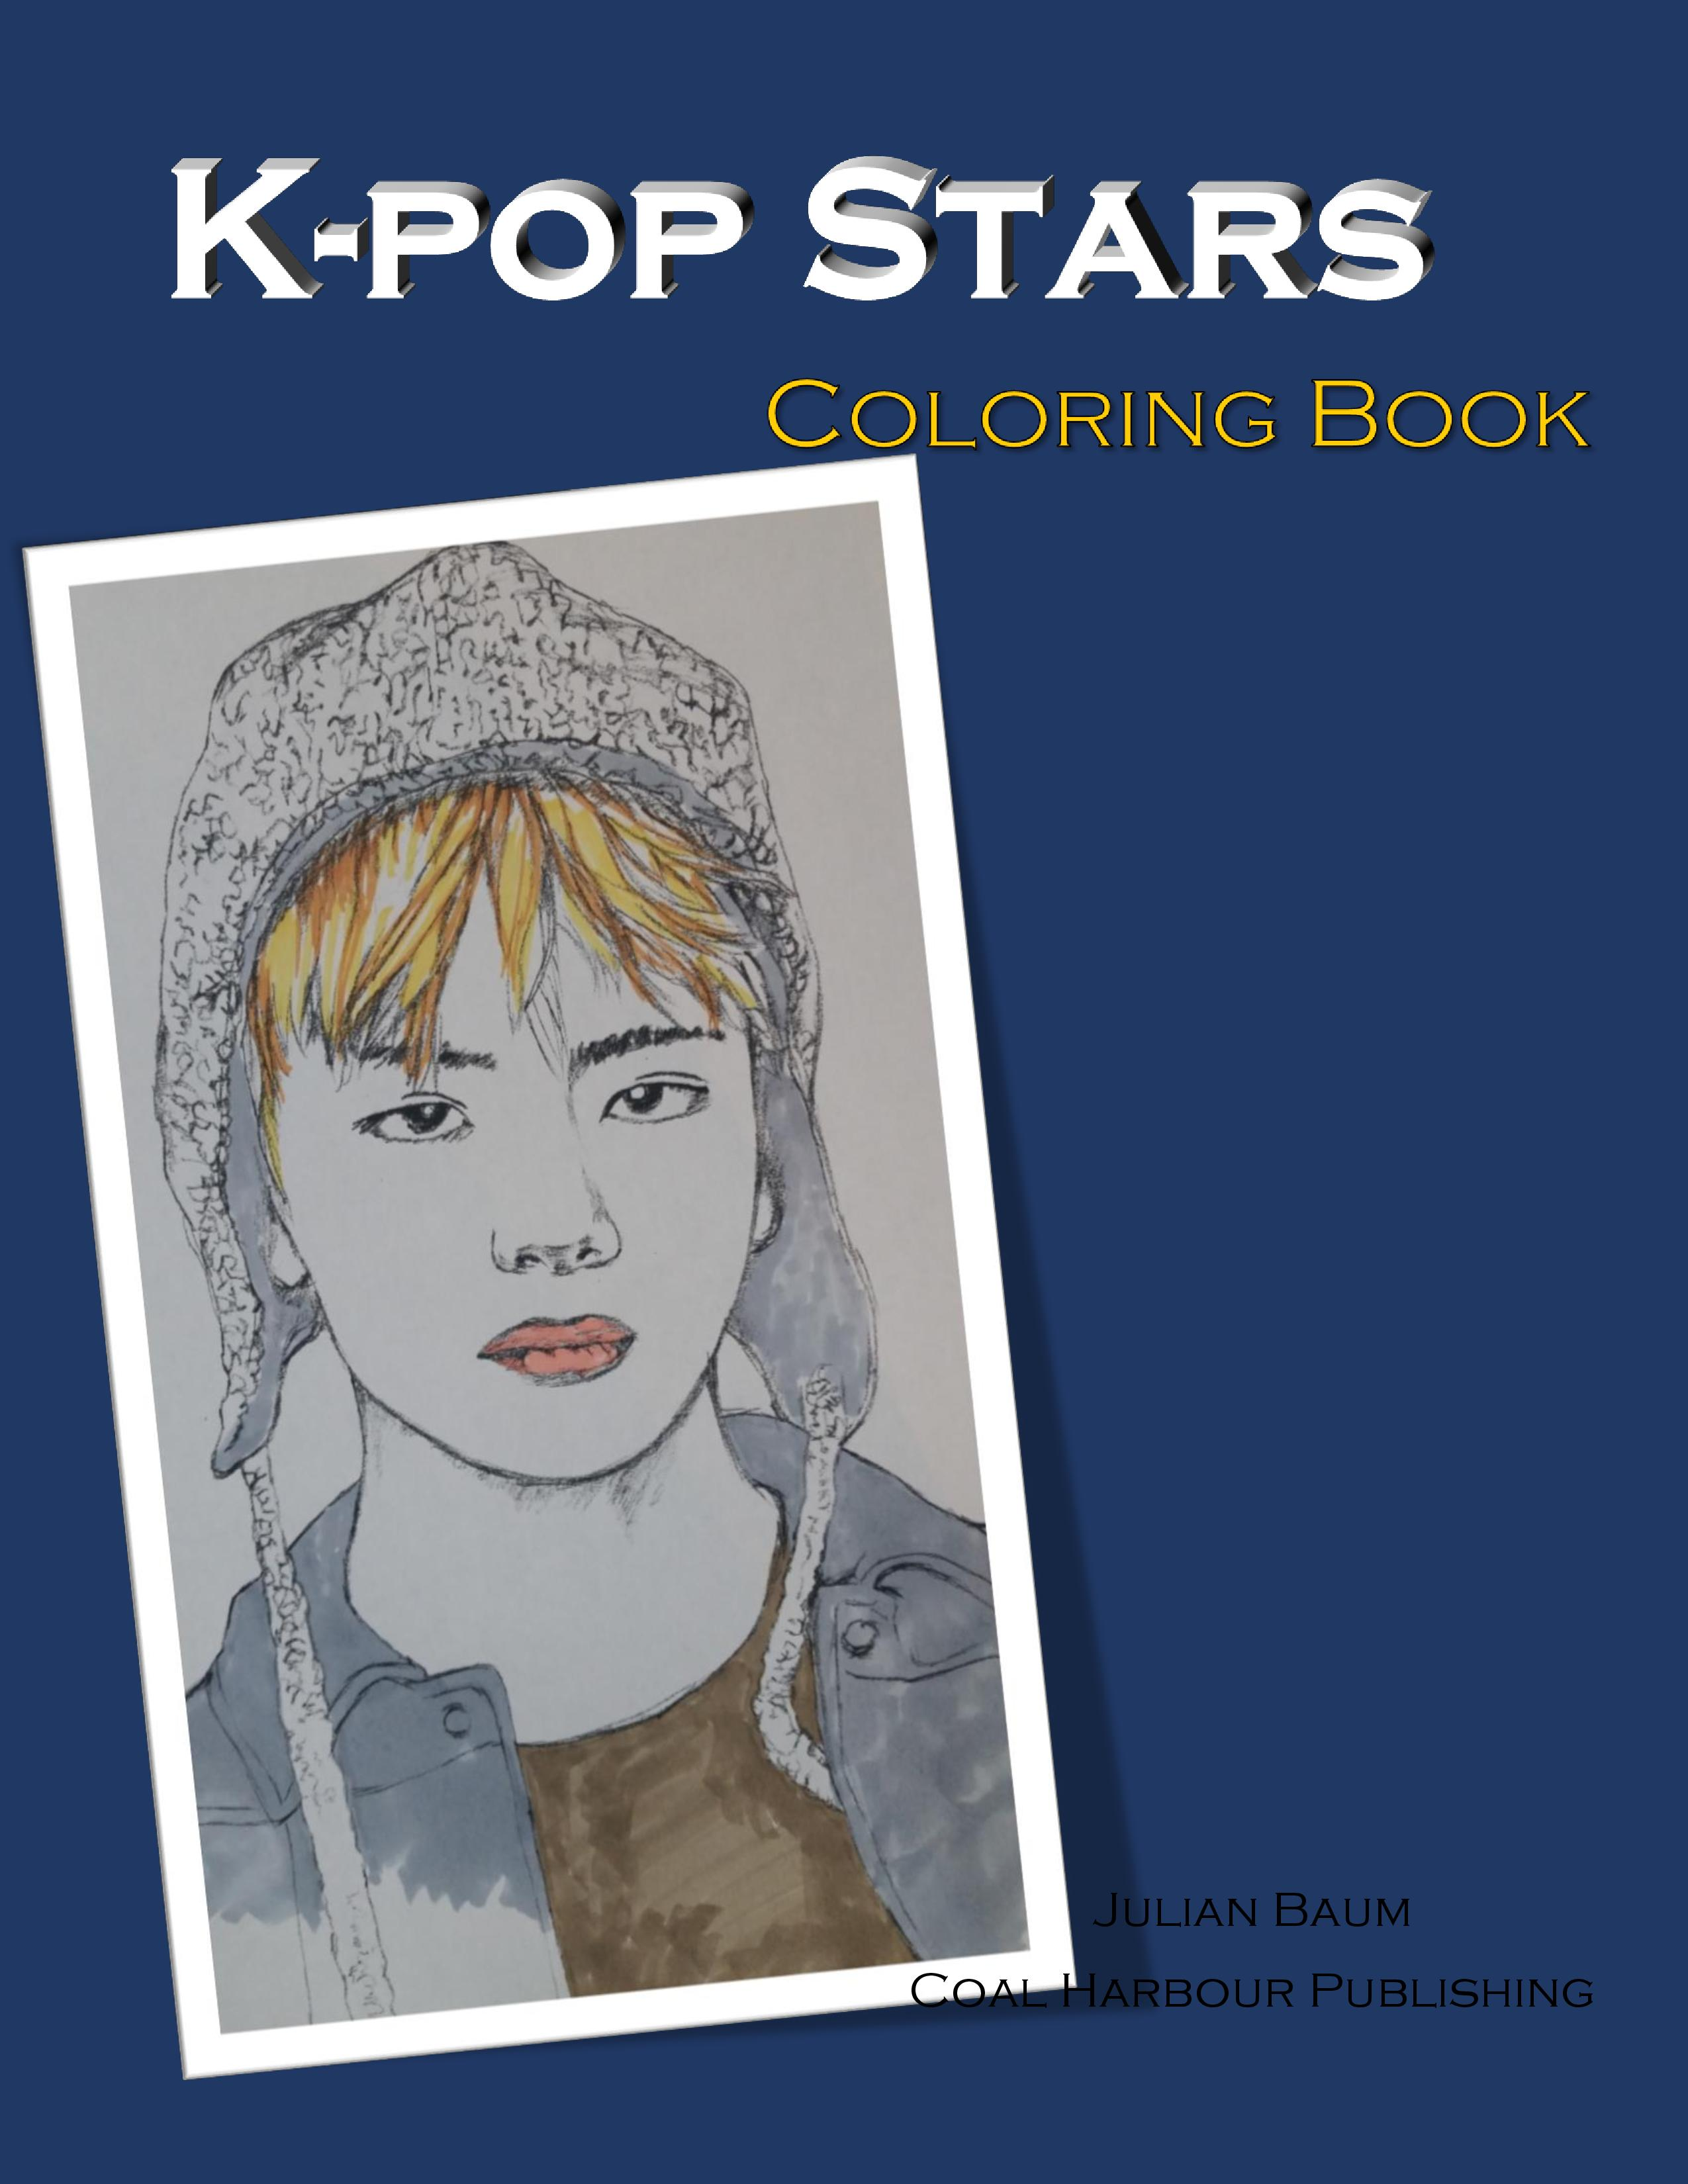 Book Come From Popular K Pop Bands Such As Big Bang Super Junior EXO BTS And Many More Take Your Favorite Medium Of Coloring Make The Drawings